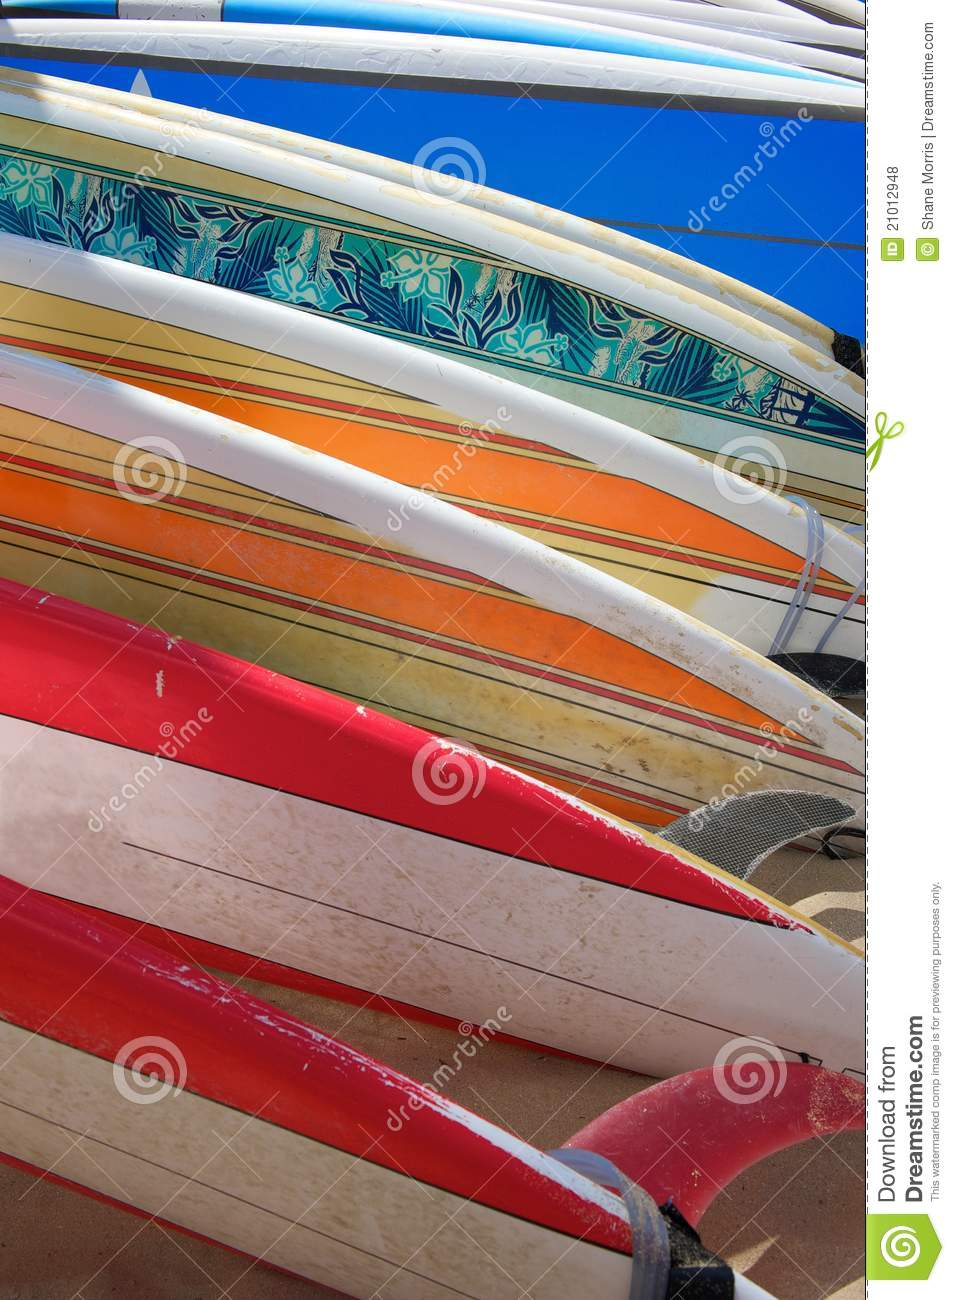 Brightly Colored Surfboards Laying on the Sand